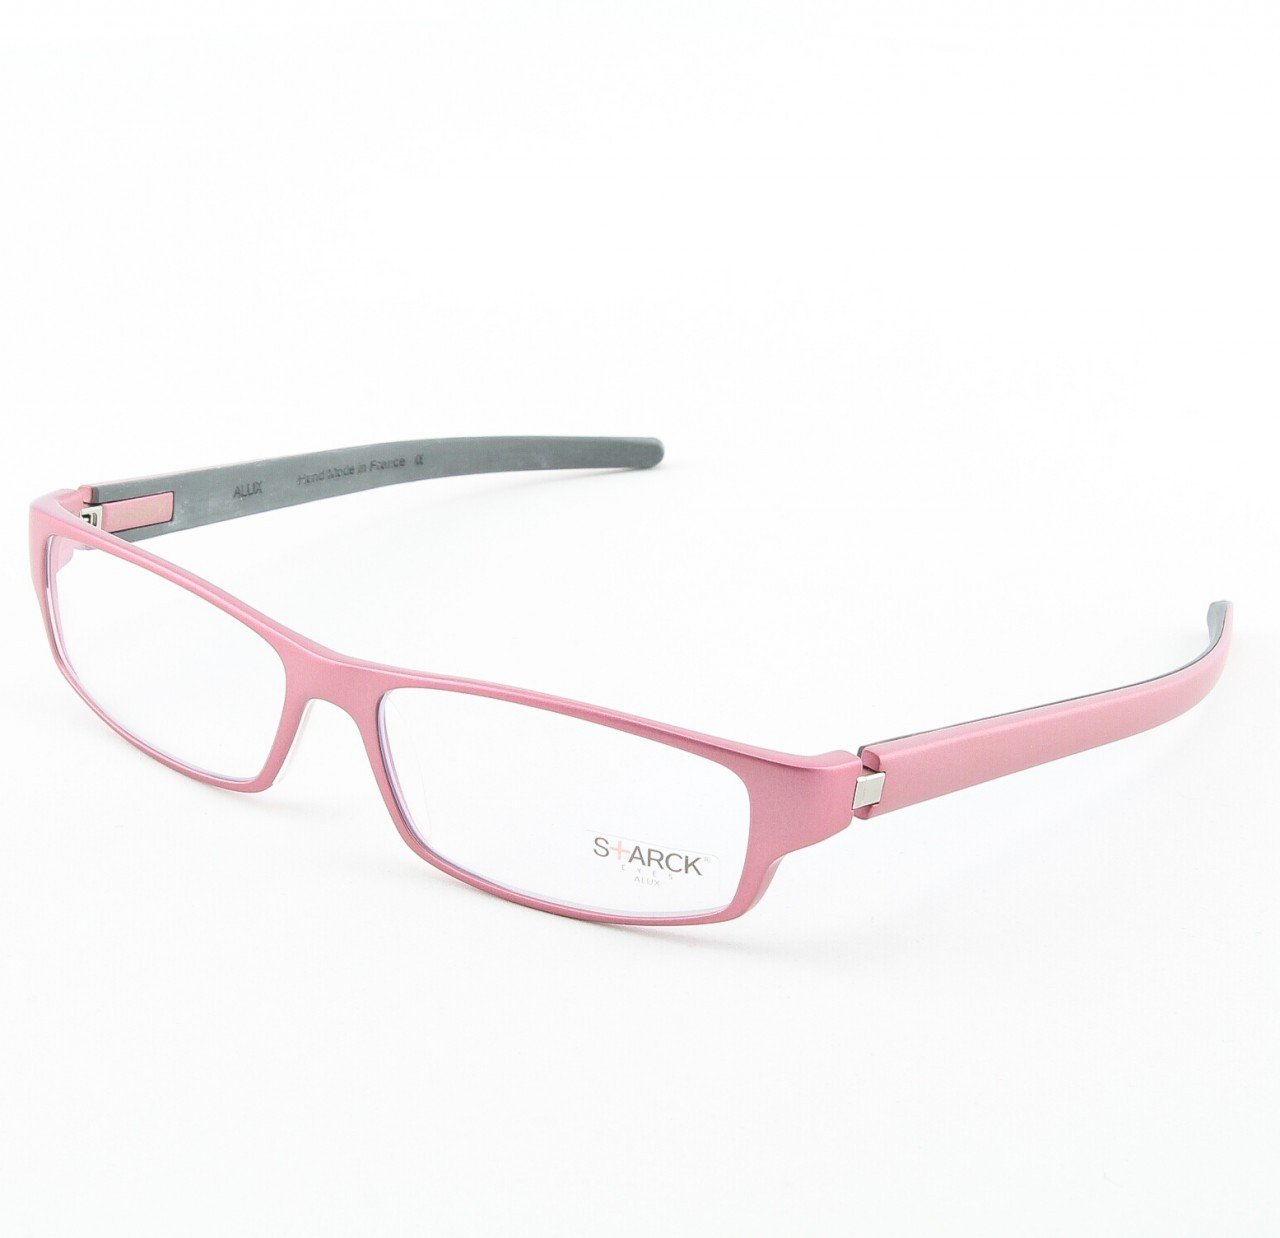 Starck Eyeglasses P0604 Col. 17 Pink with Clear Lenses